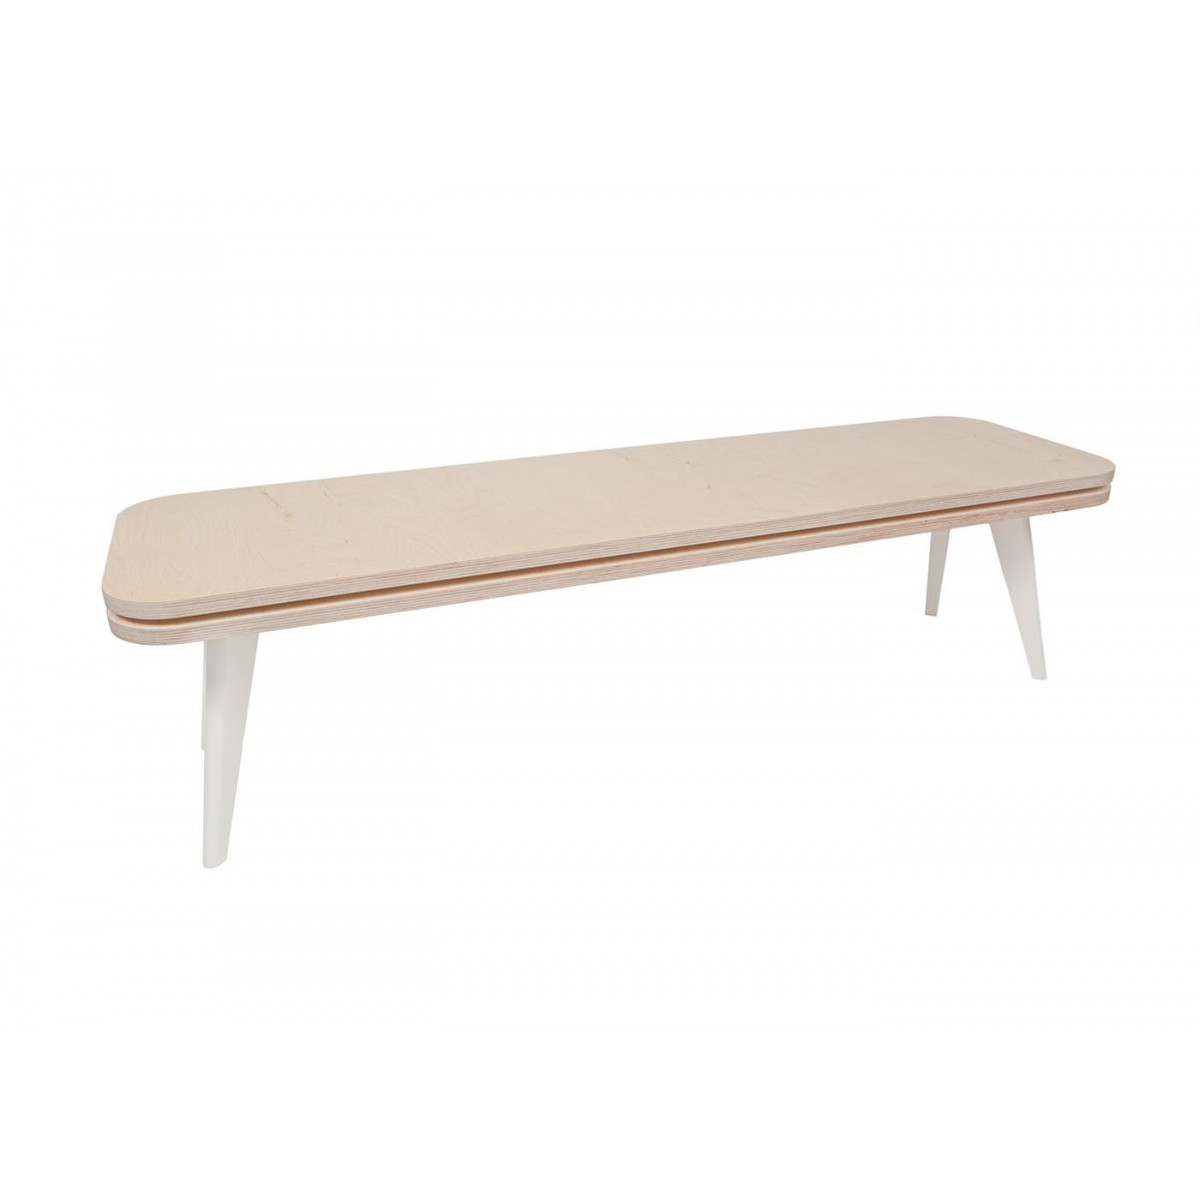 Table basse design bois clair for Table basse bois design